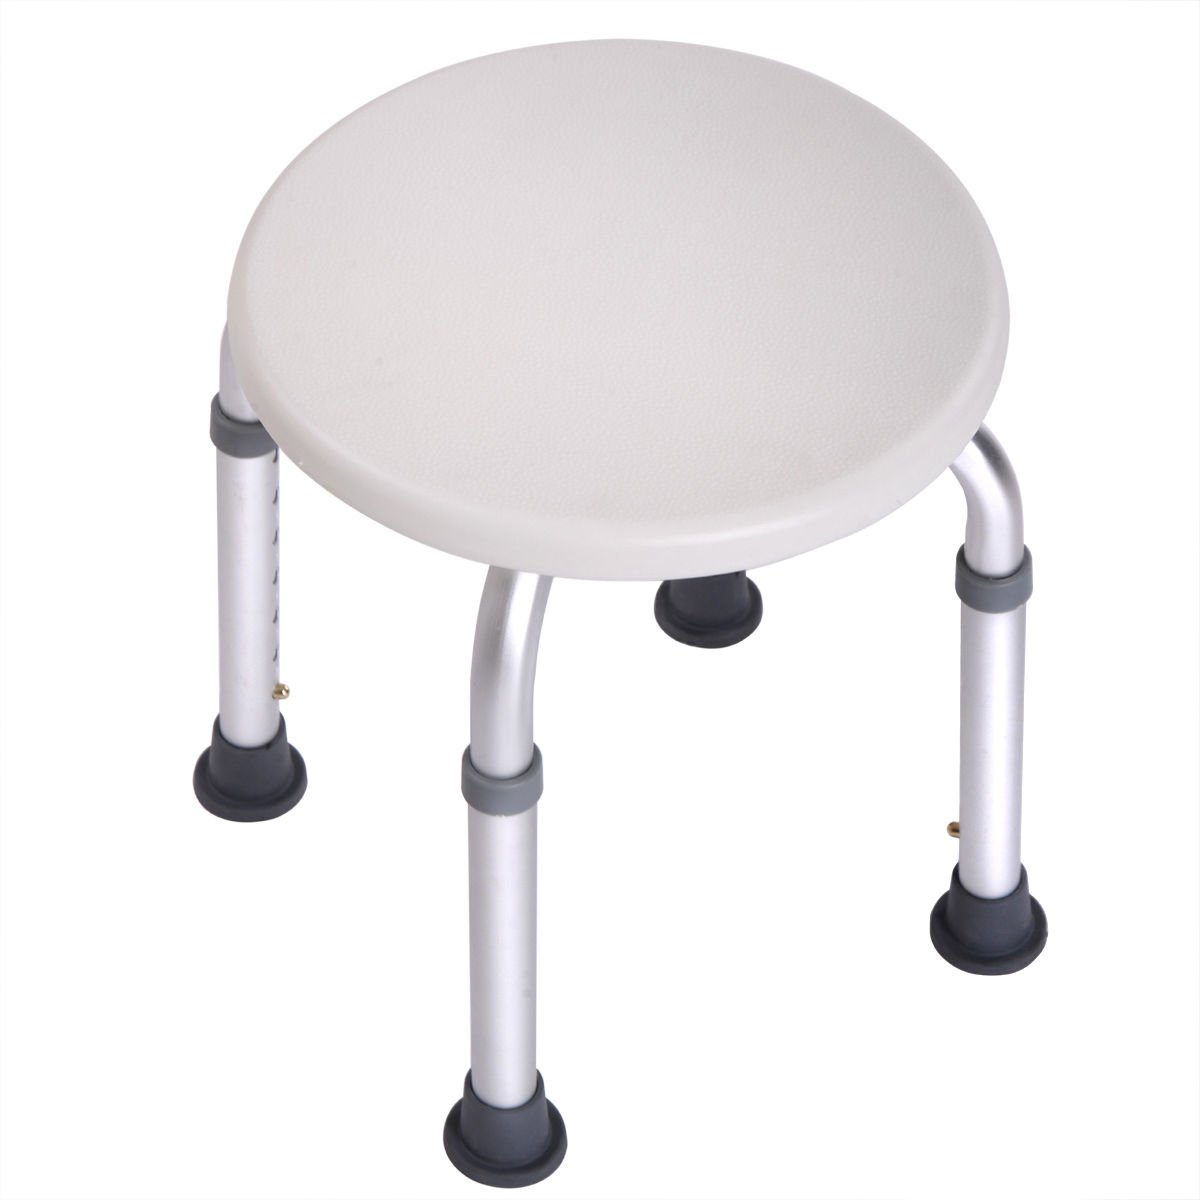 7 Height Adjustable Medical Bath Shower Stool Chair Bath Tub Seat in White New (Round)